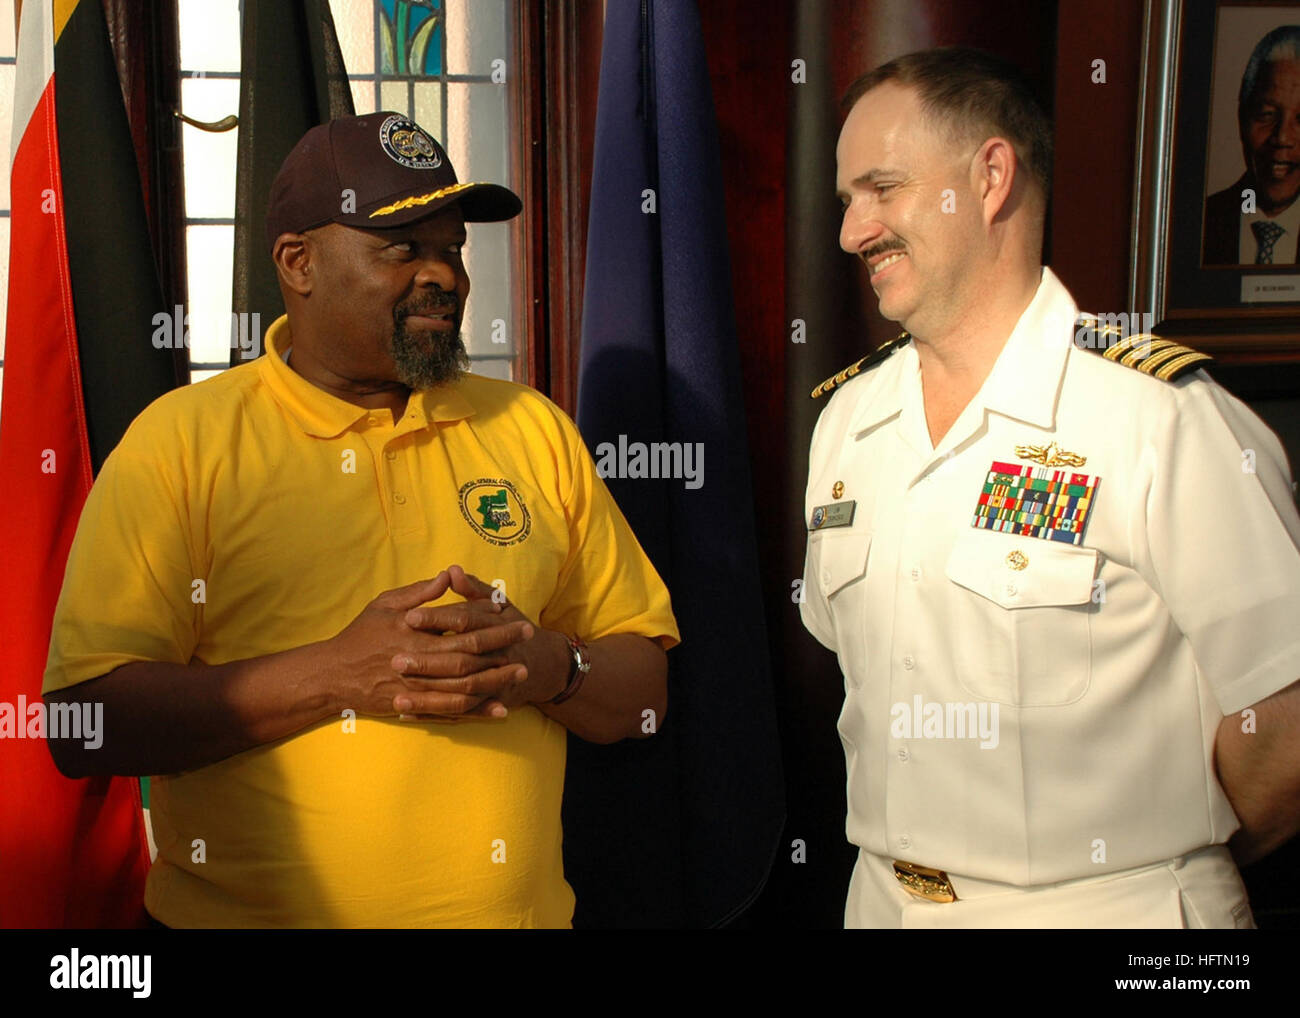 090713-N-1655H-159 DURBAN, South Africa (July 13, 2009) Capt. Jim Tranoris, commodore of Commander, Task Force 363, - Stock Image